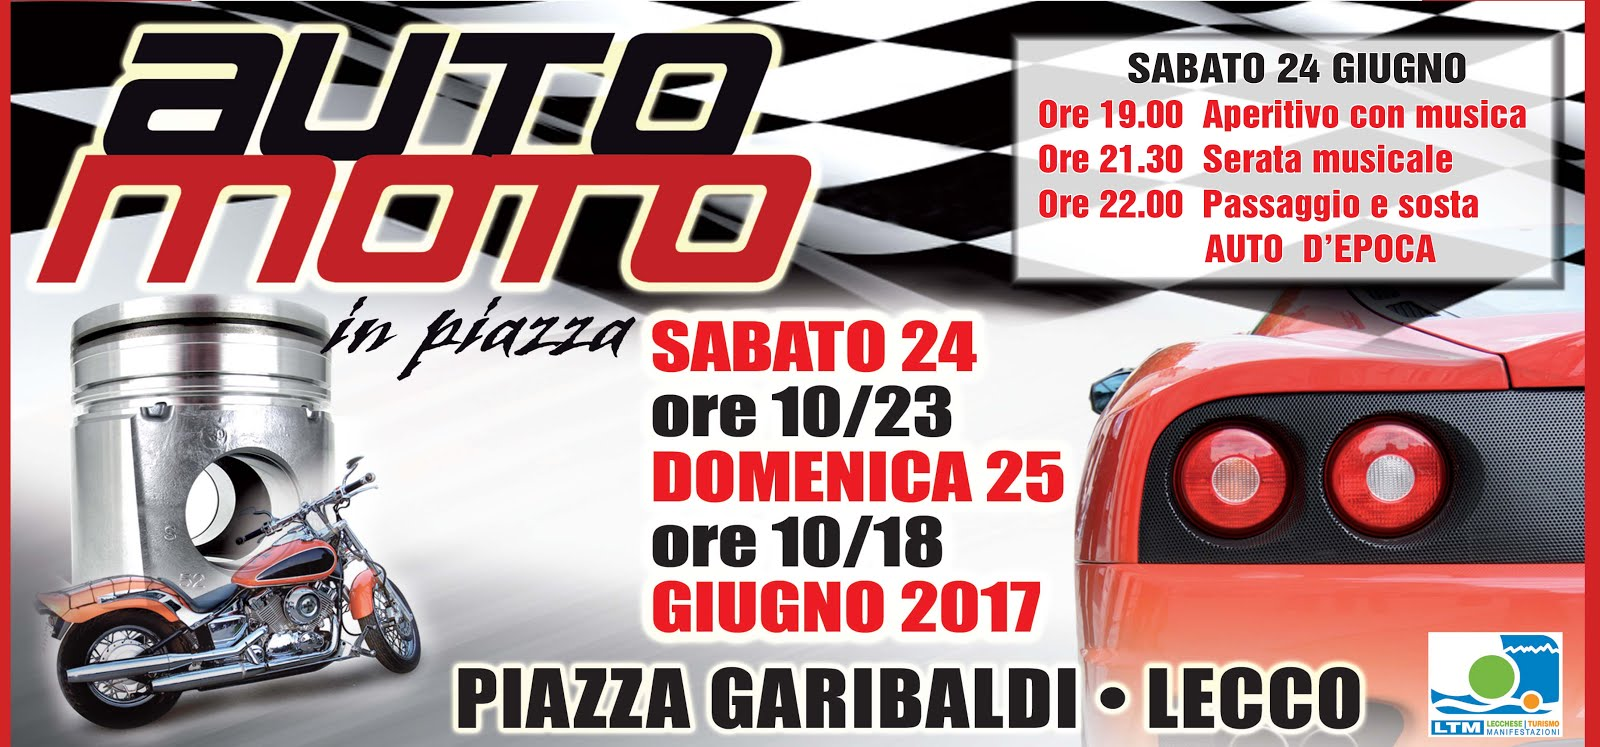 Auto e Moto in piazza